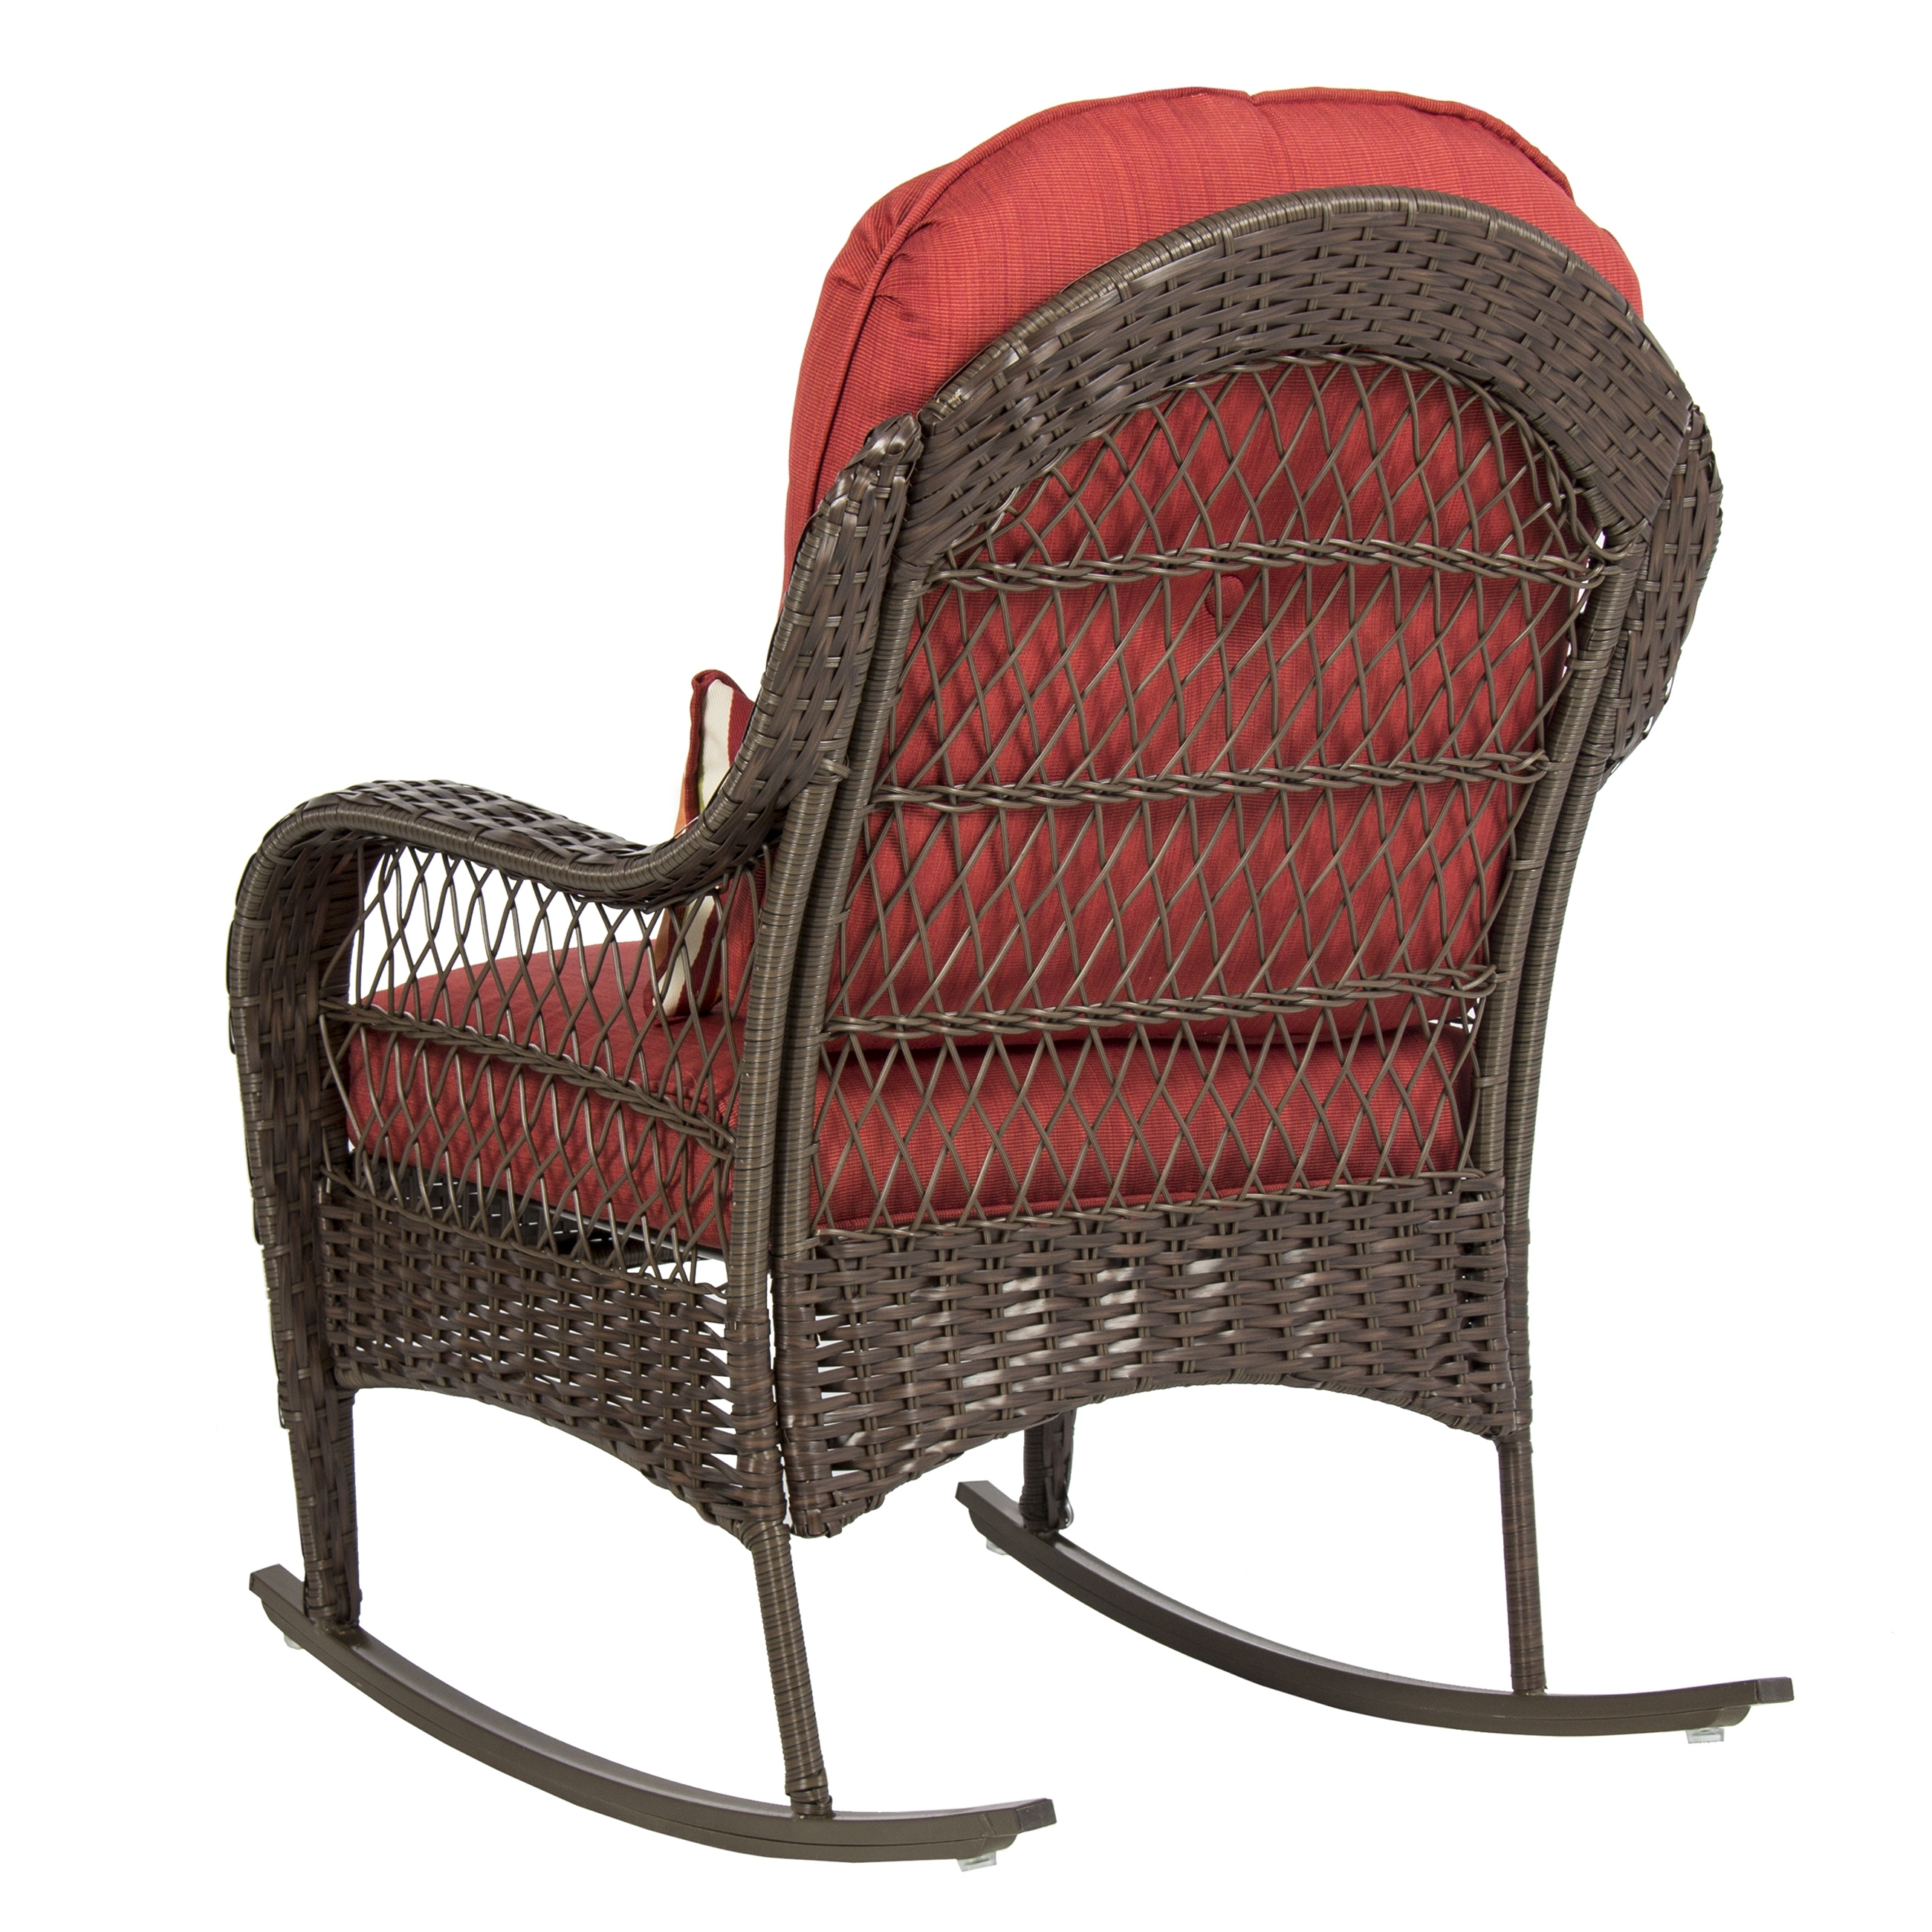 Wicker Rocking Chairs With Cushions With Latest Best Choice Products Wicker Rocking Chair Patio Porch Deck Furniture (View 15 of 15)